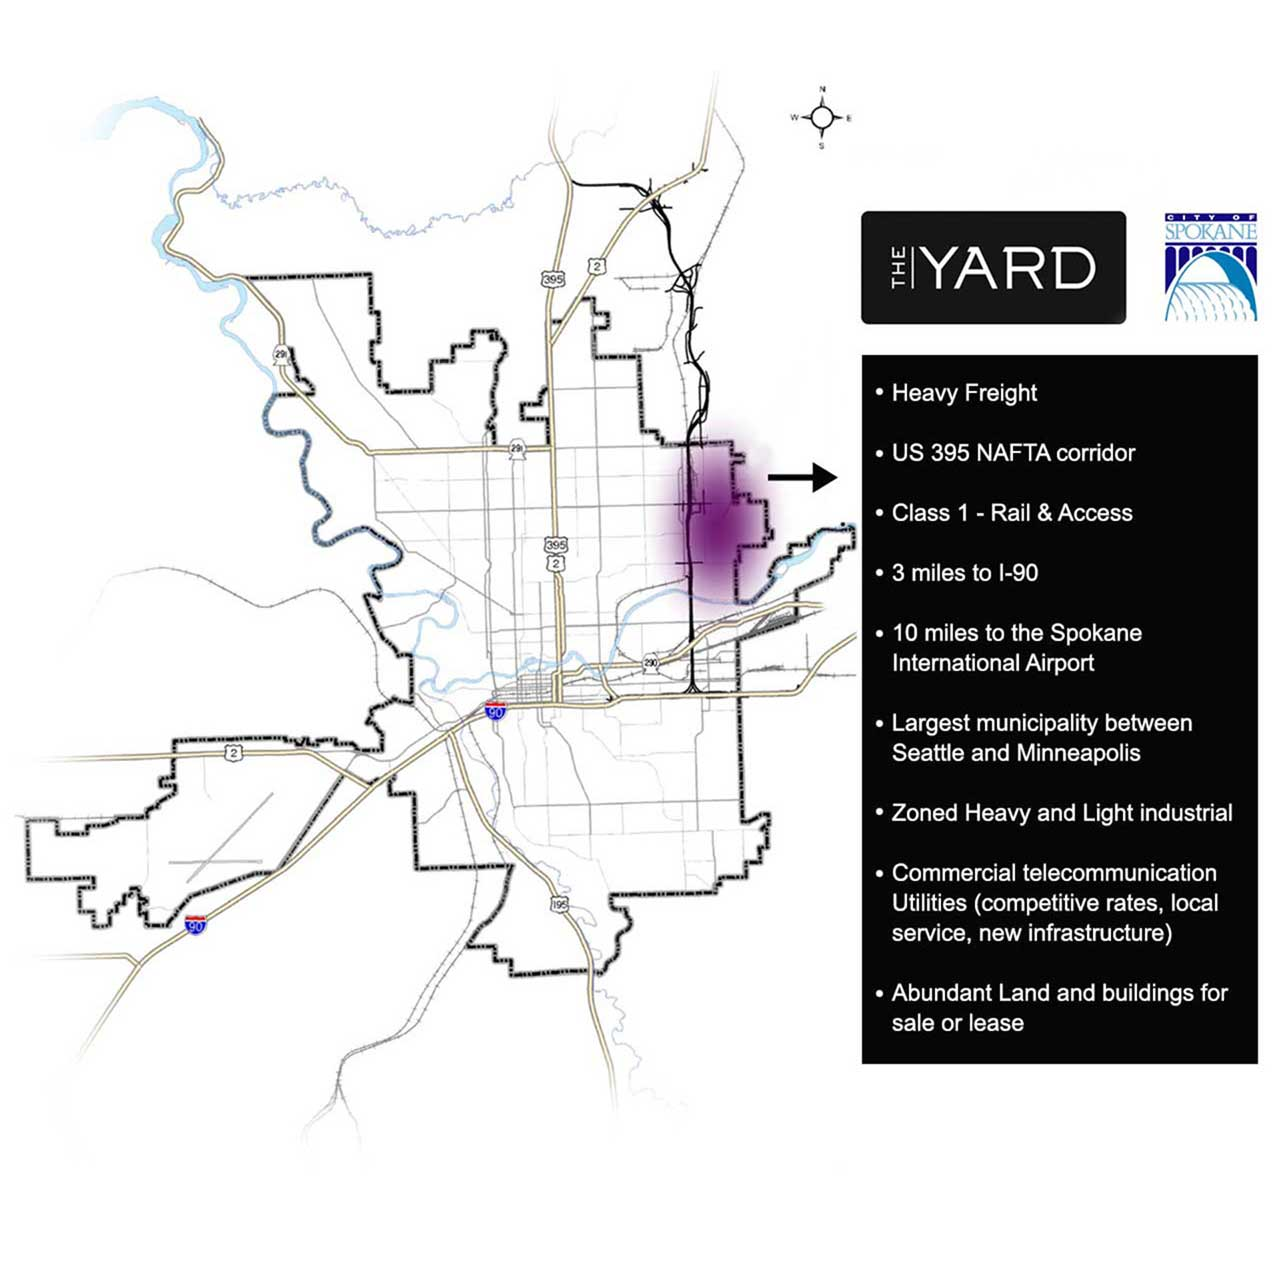 The YARD map